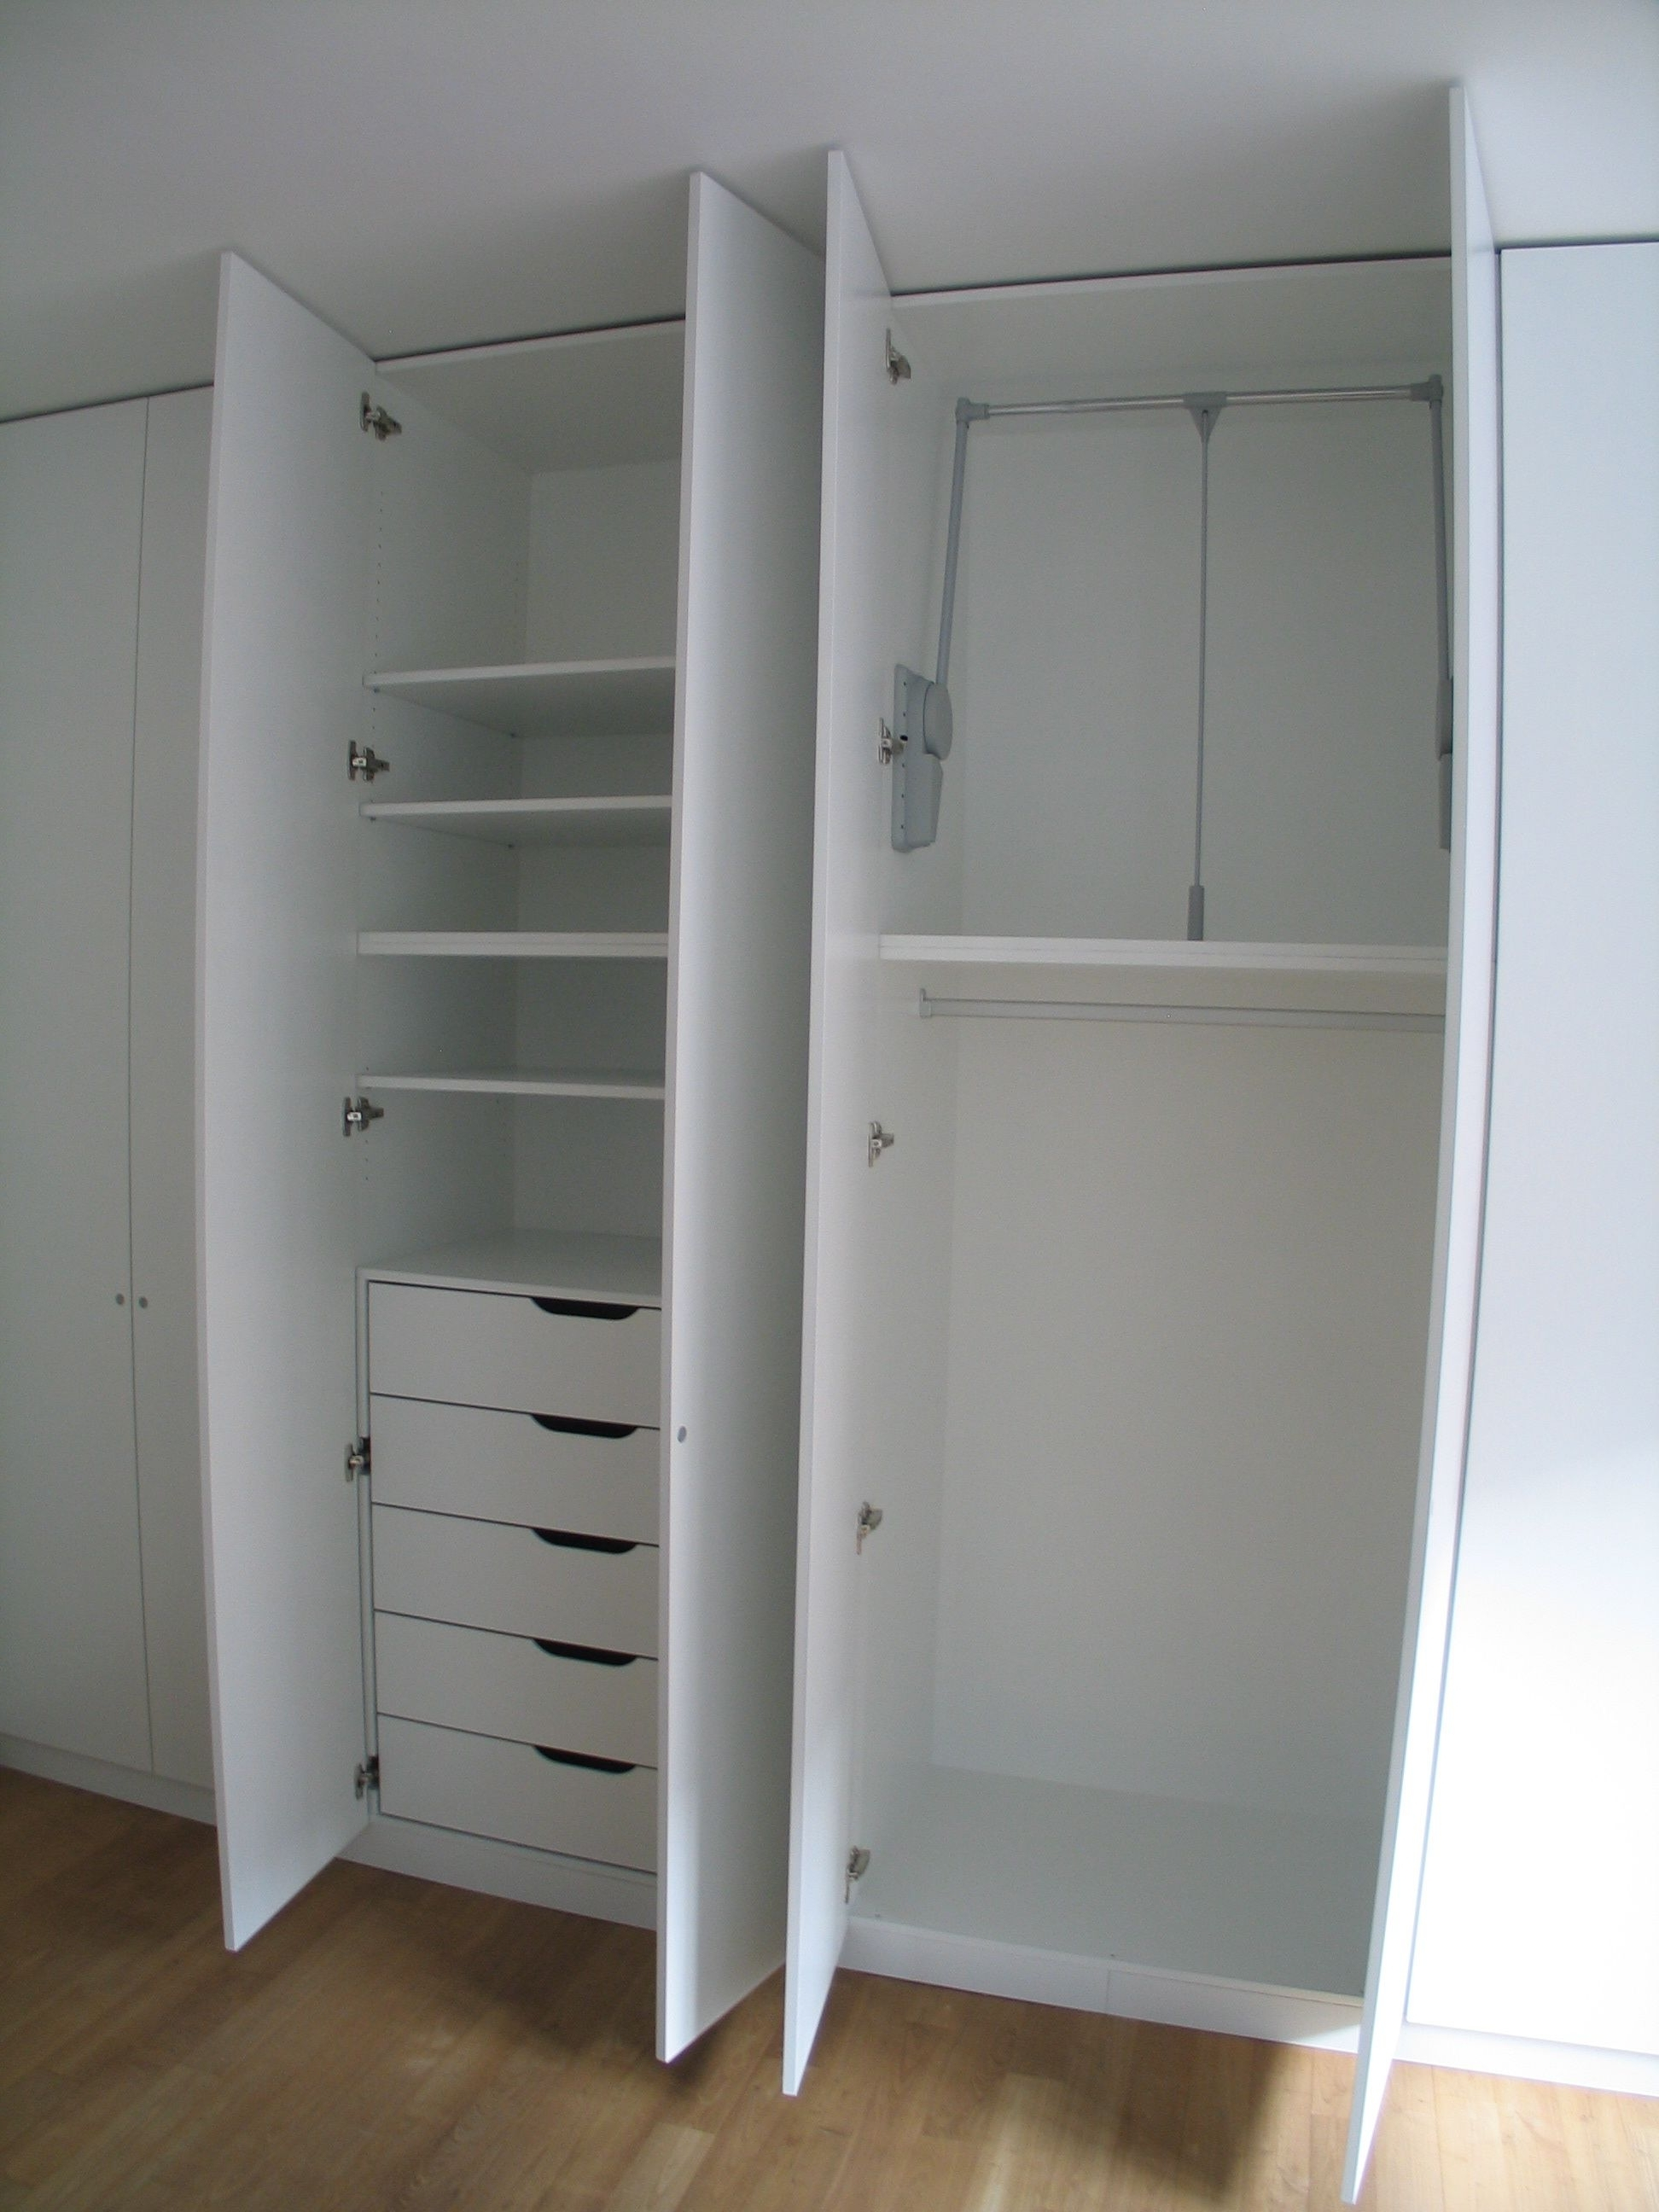 Fashionable Vintage White Wooden Wardrobe With Inside Shelves And Numerous Pertaining To White Wood Wardrobes (View 4 of 15)